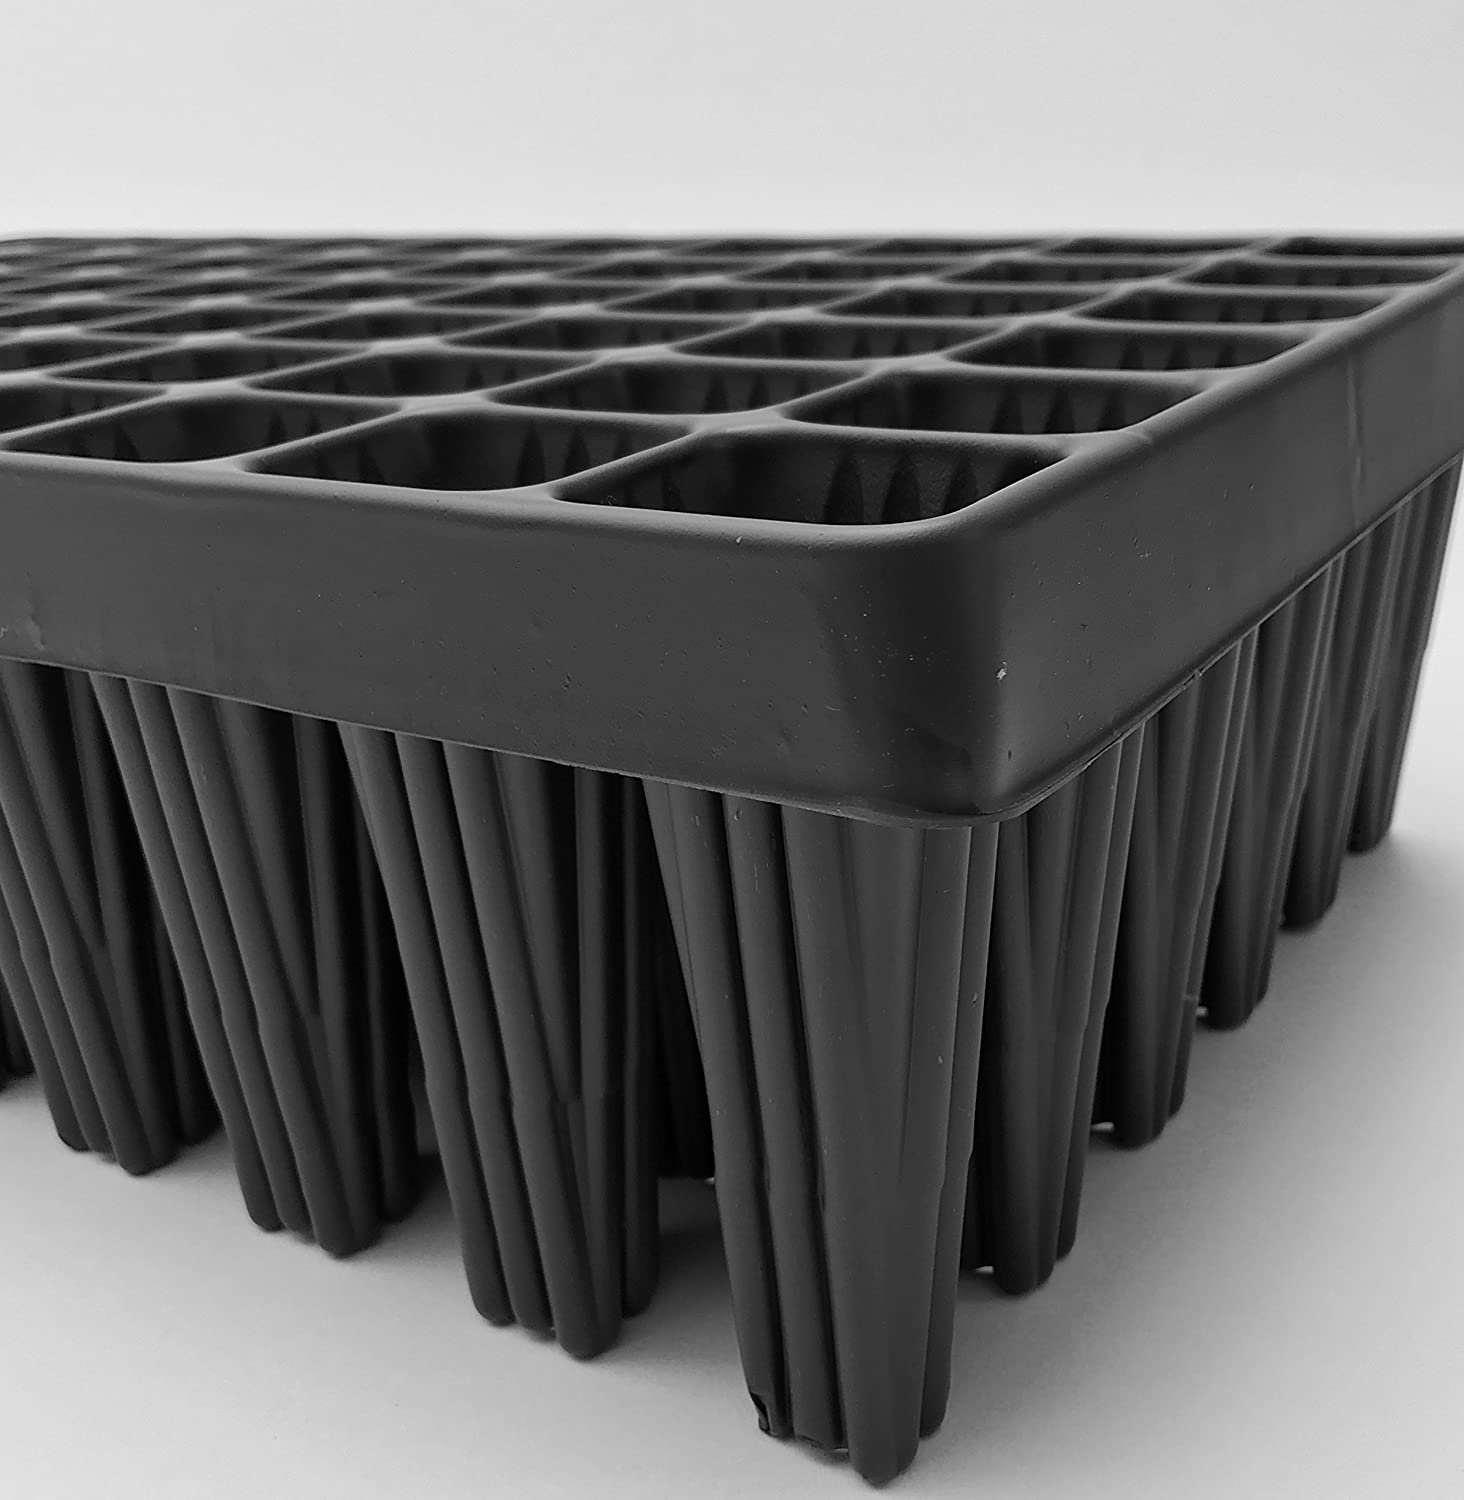 Pack of 2 Nutleys 104-Cell Modiform Plug Plant Seed Tray